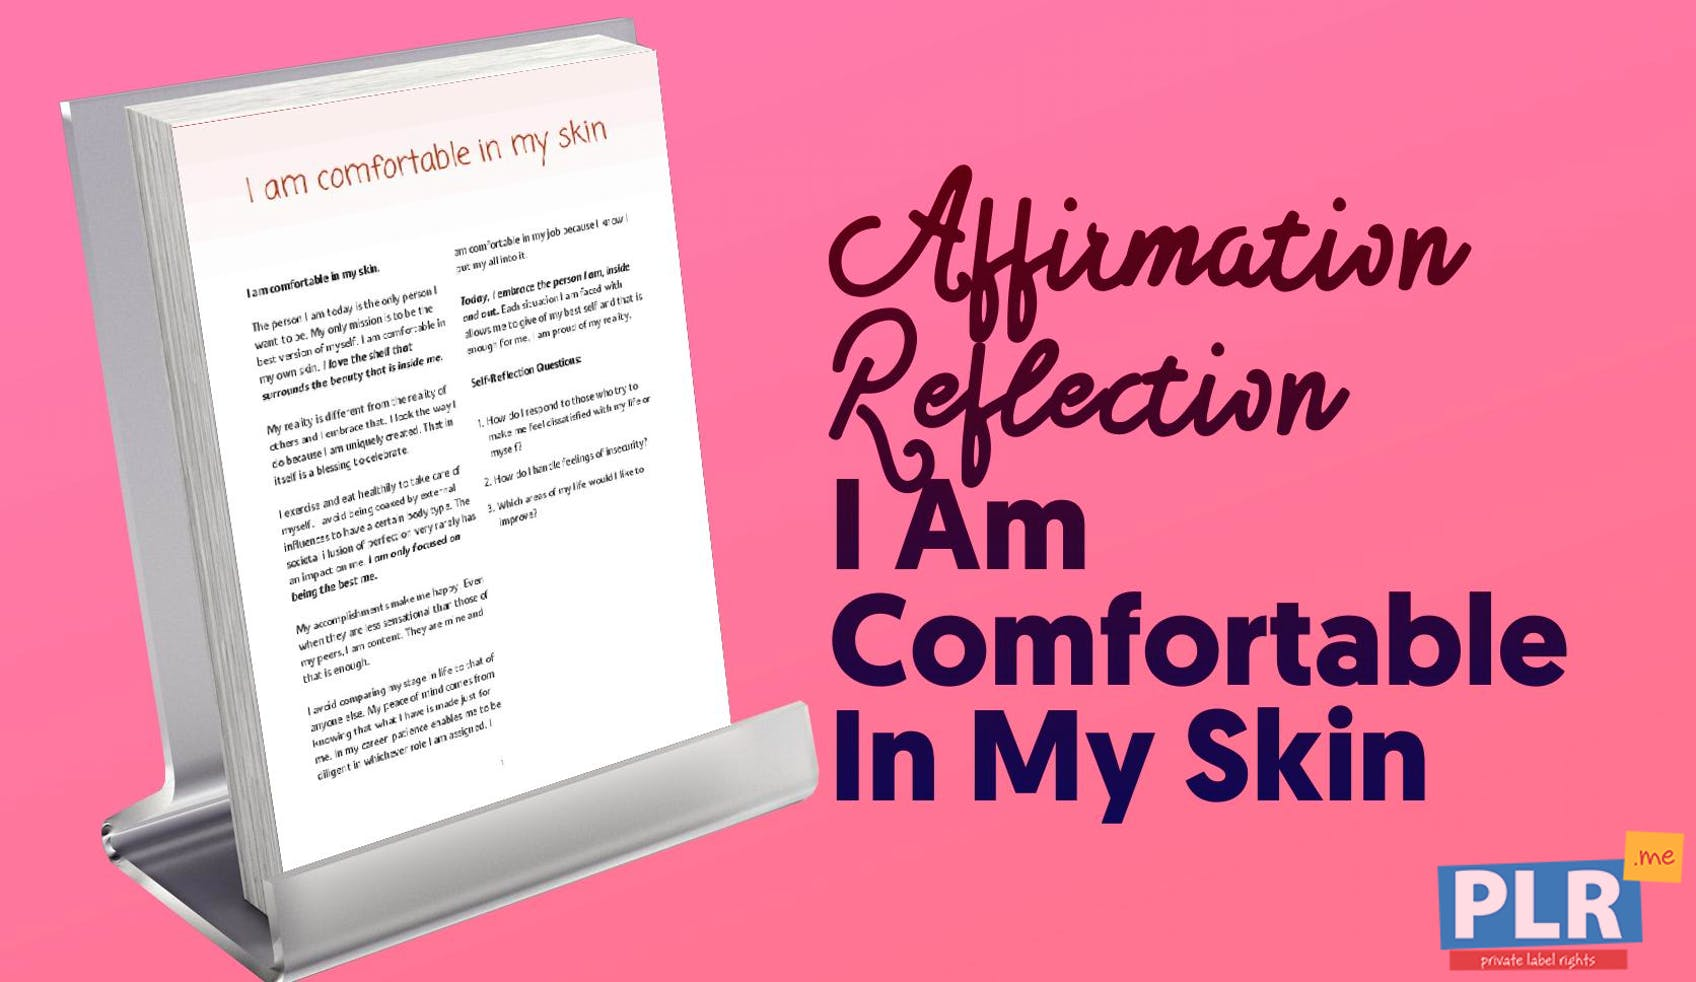 I Am Comfortable In My Skin